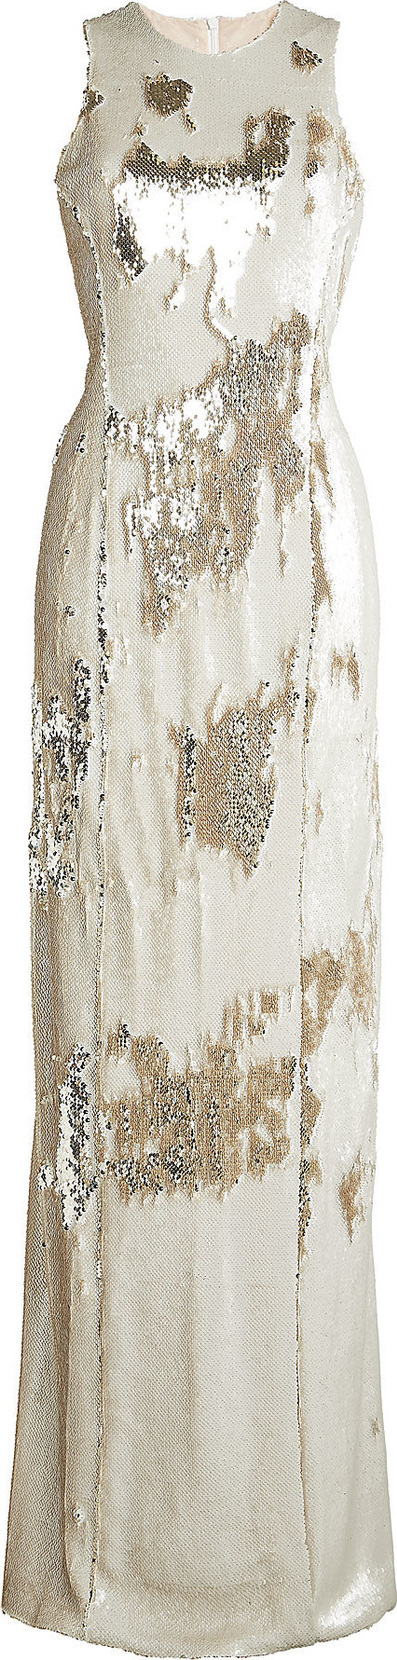 Galvan Salar Column Sequin Dress